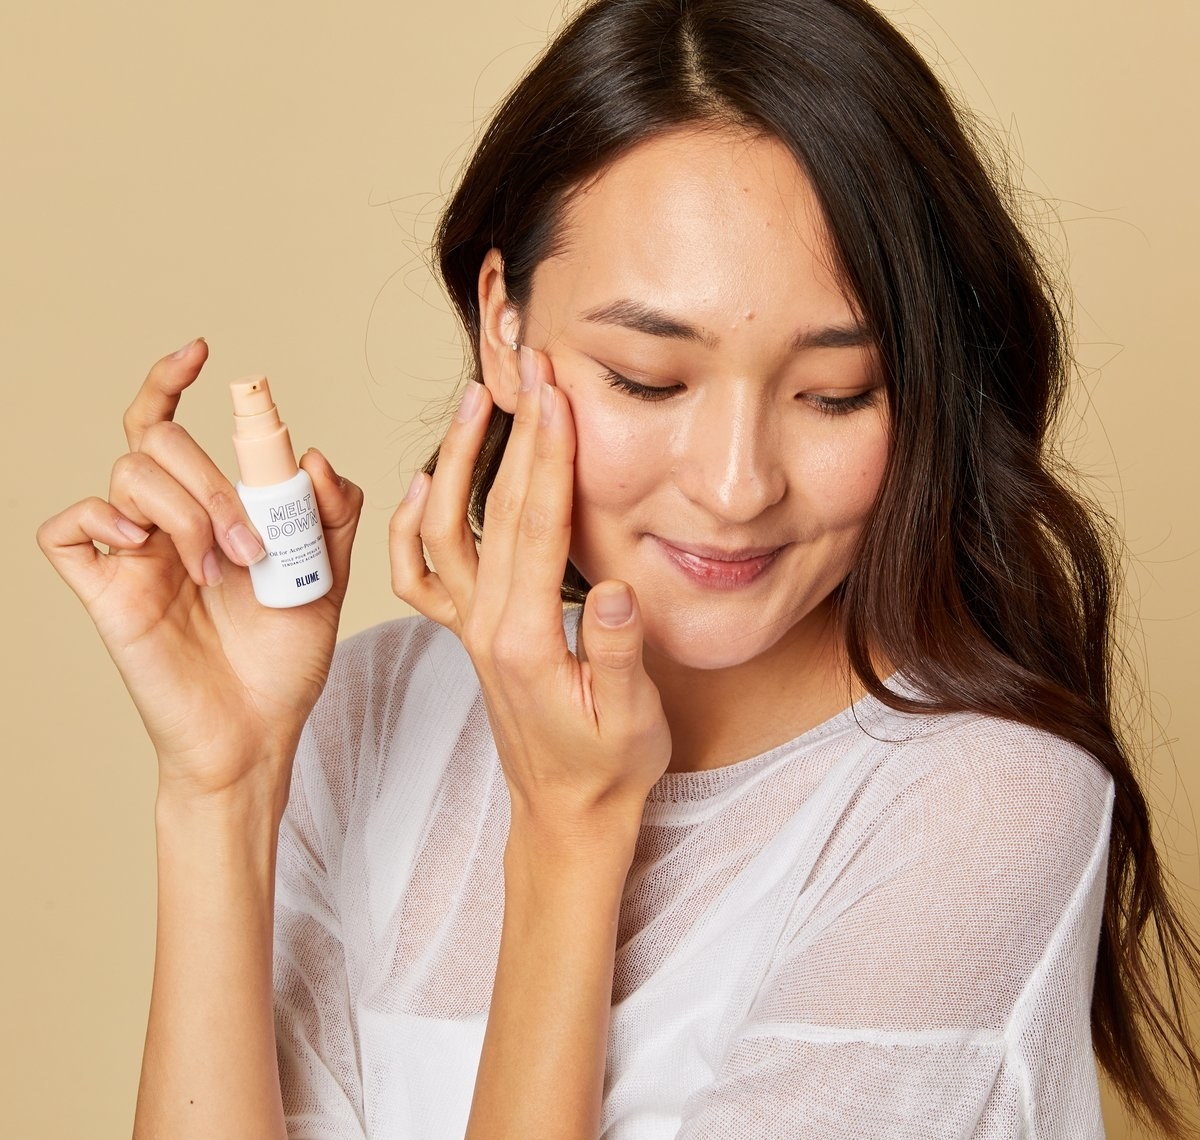 model holding a bottle of the acne oil and applying some to their face